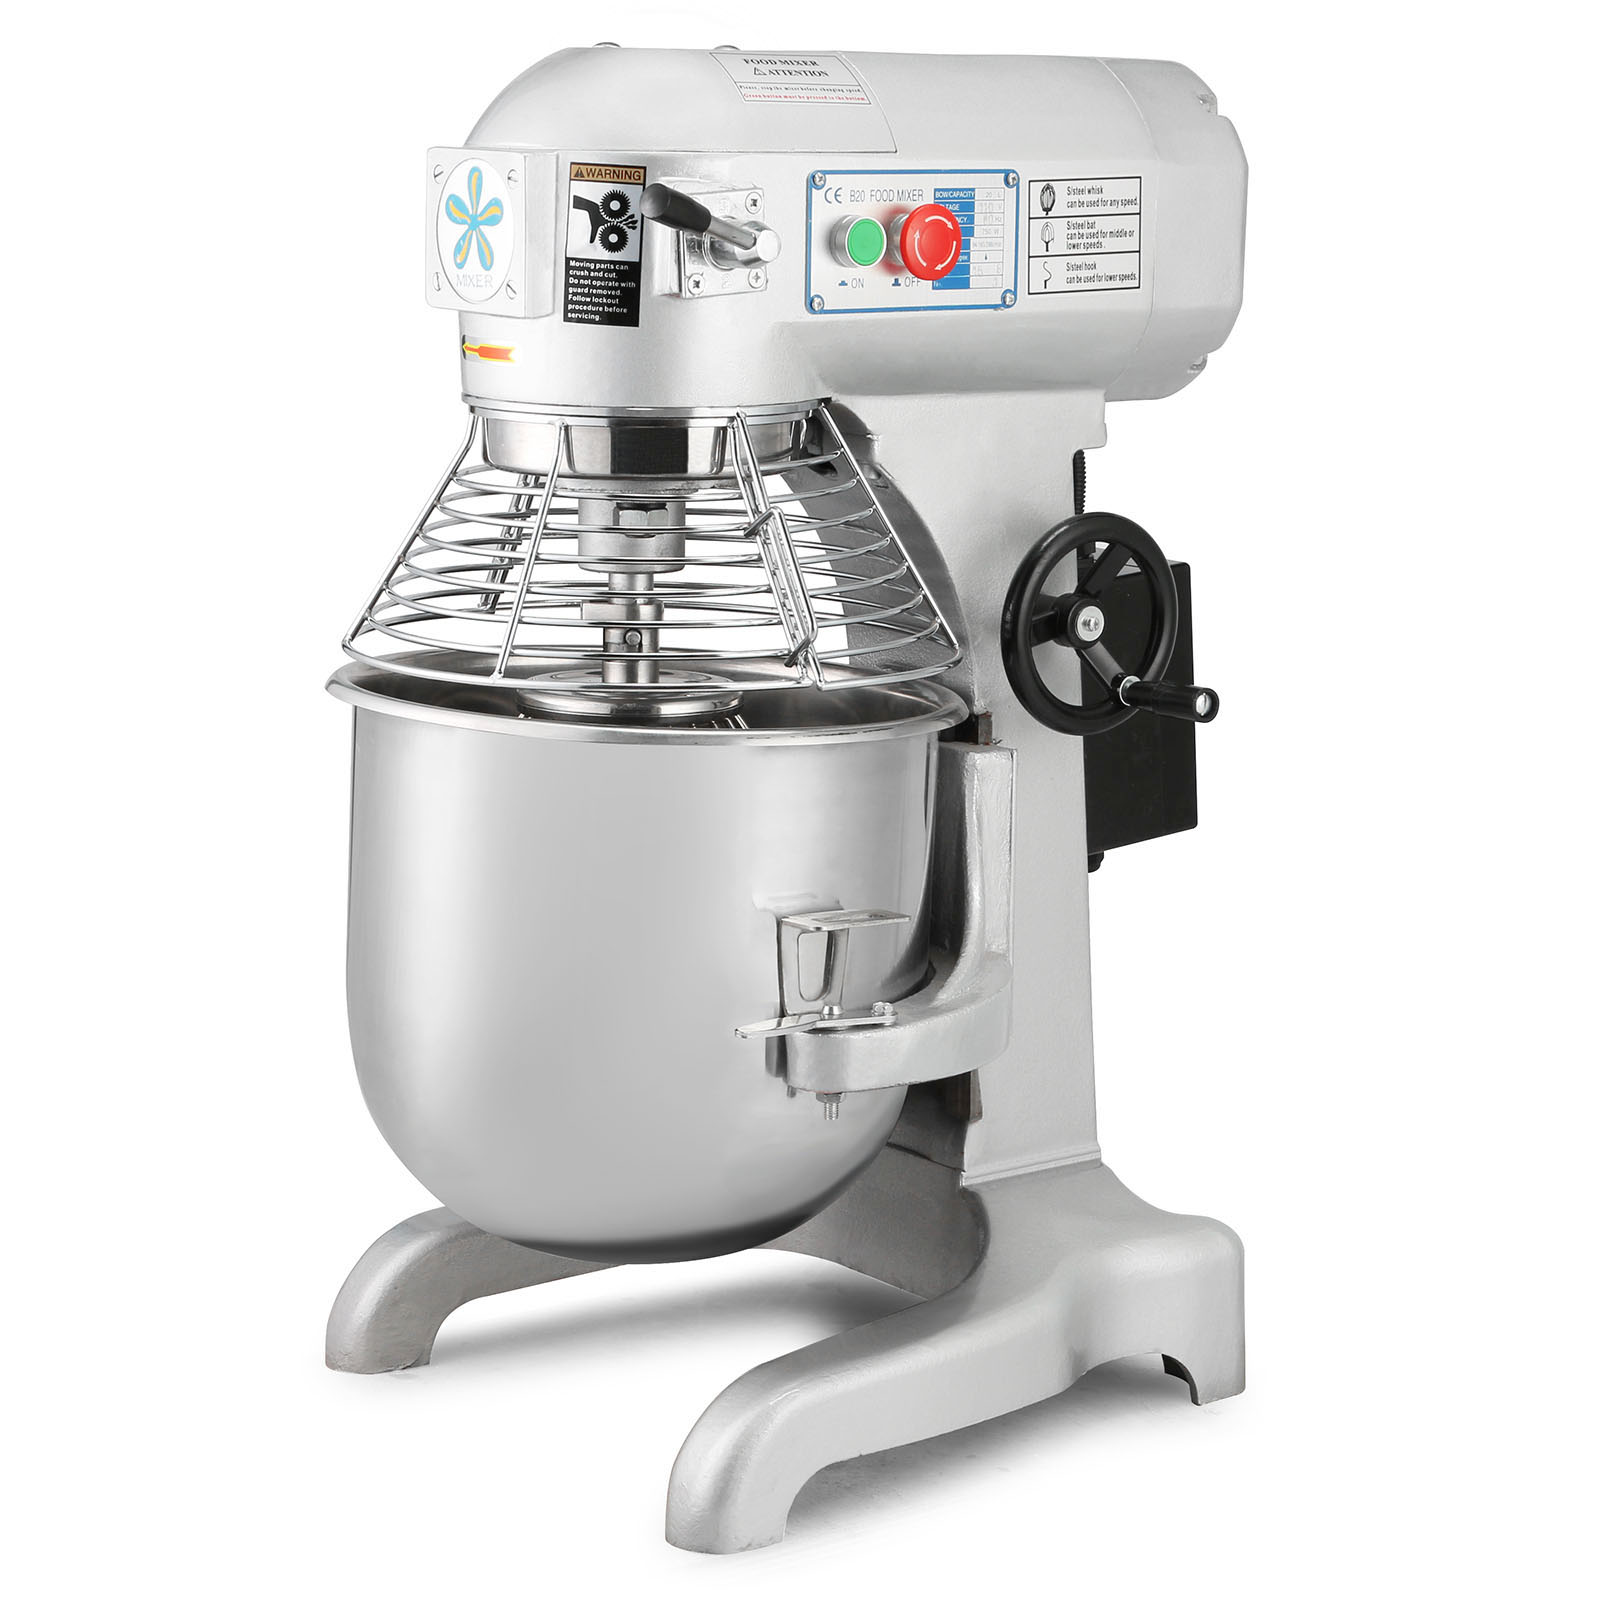 food dough stand mixer mixing tool stainless steel bowl 10l 20l 30l usa stock ebay. Black Bedroom Furniture Sets. Home Design Ideas